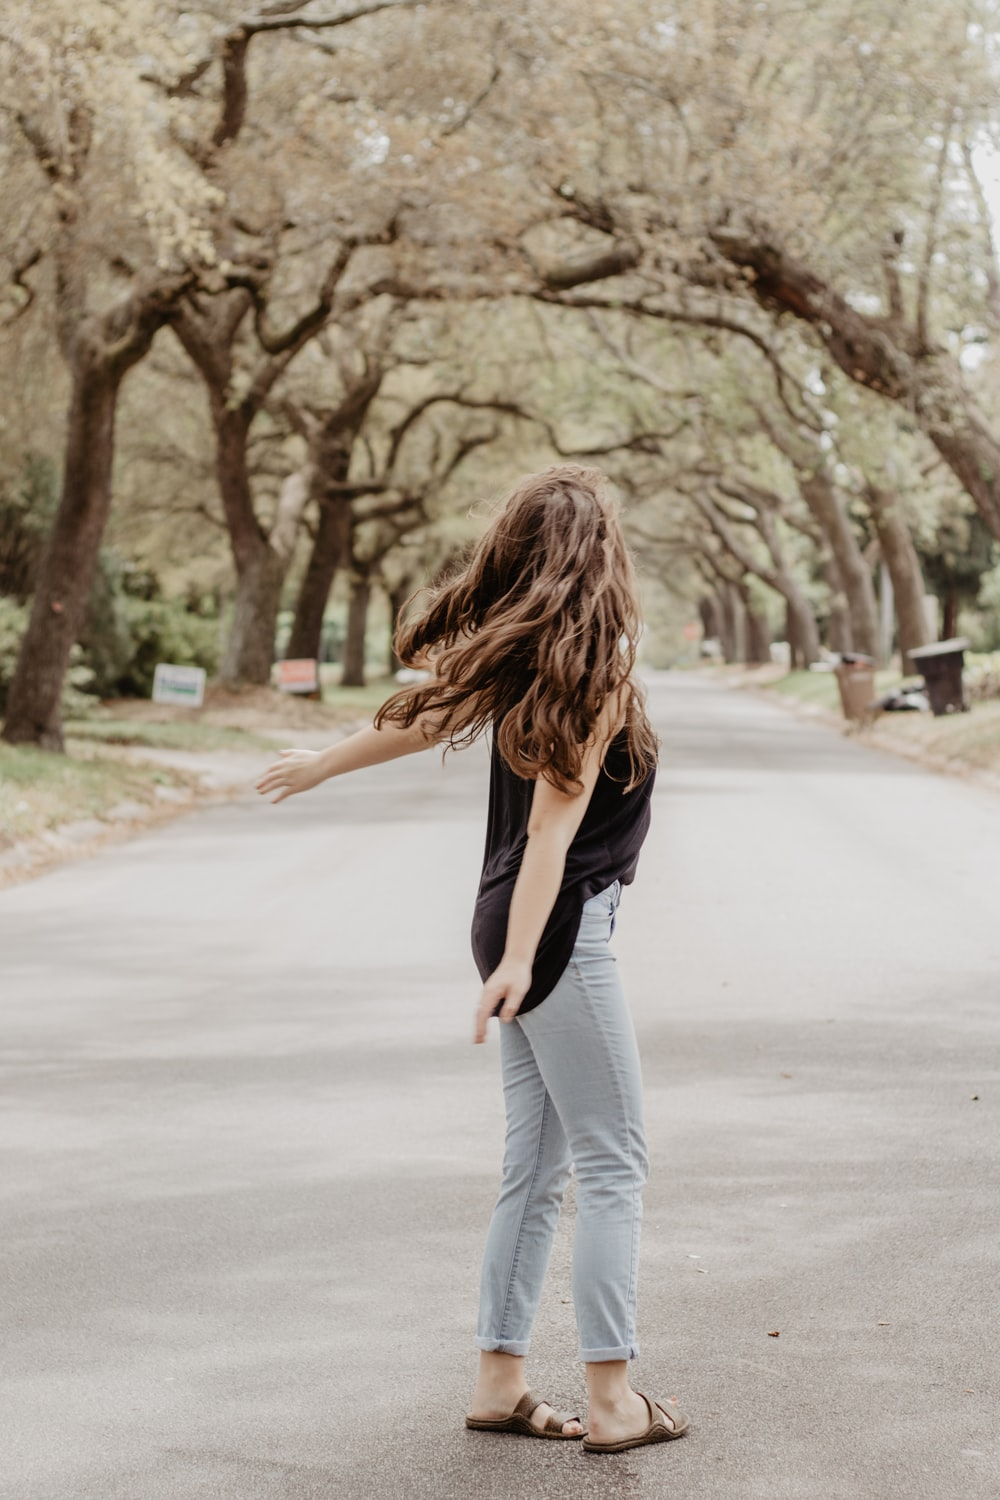 woman in black shirt and blue denim jeans standing on gray asphalt road during daytime